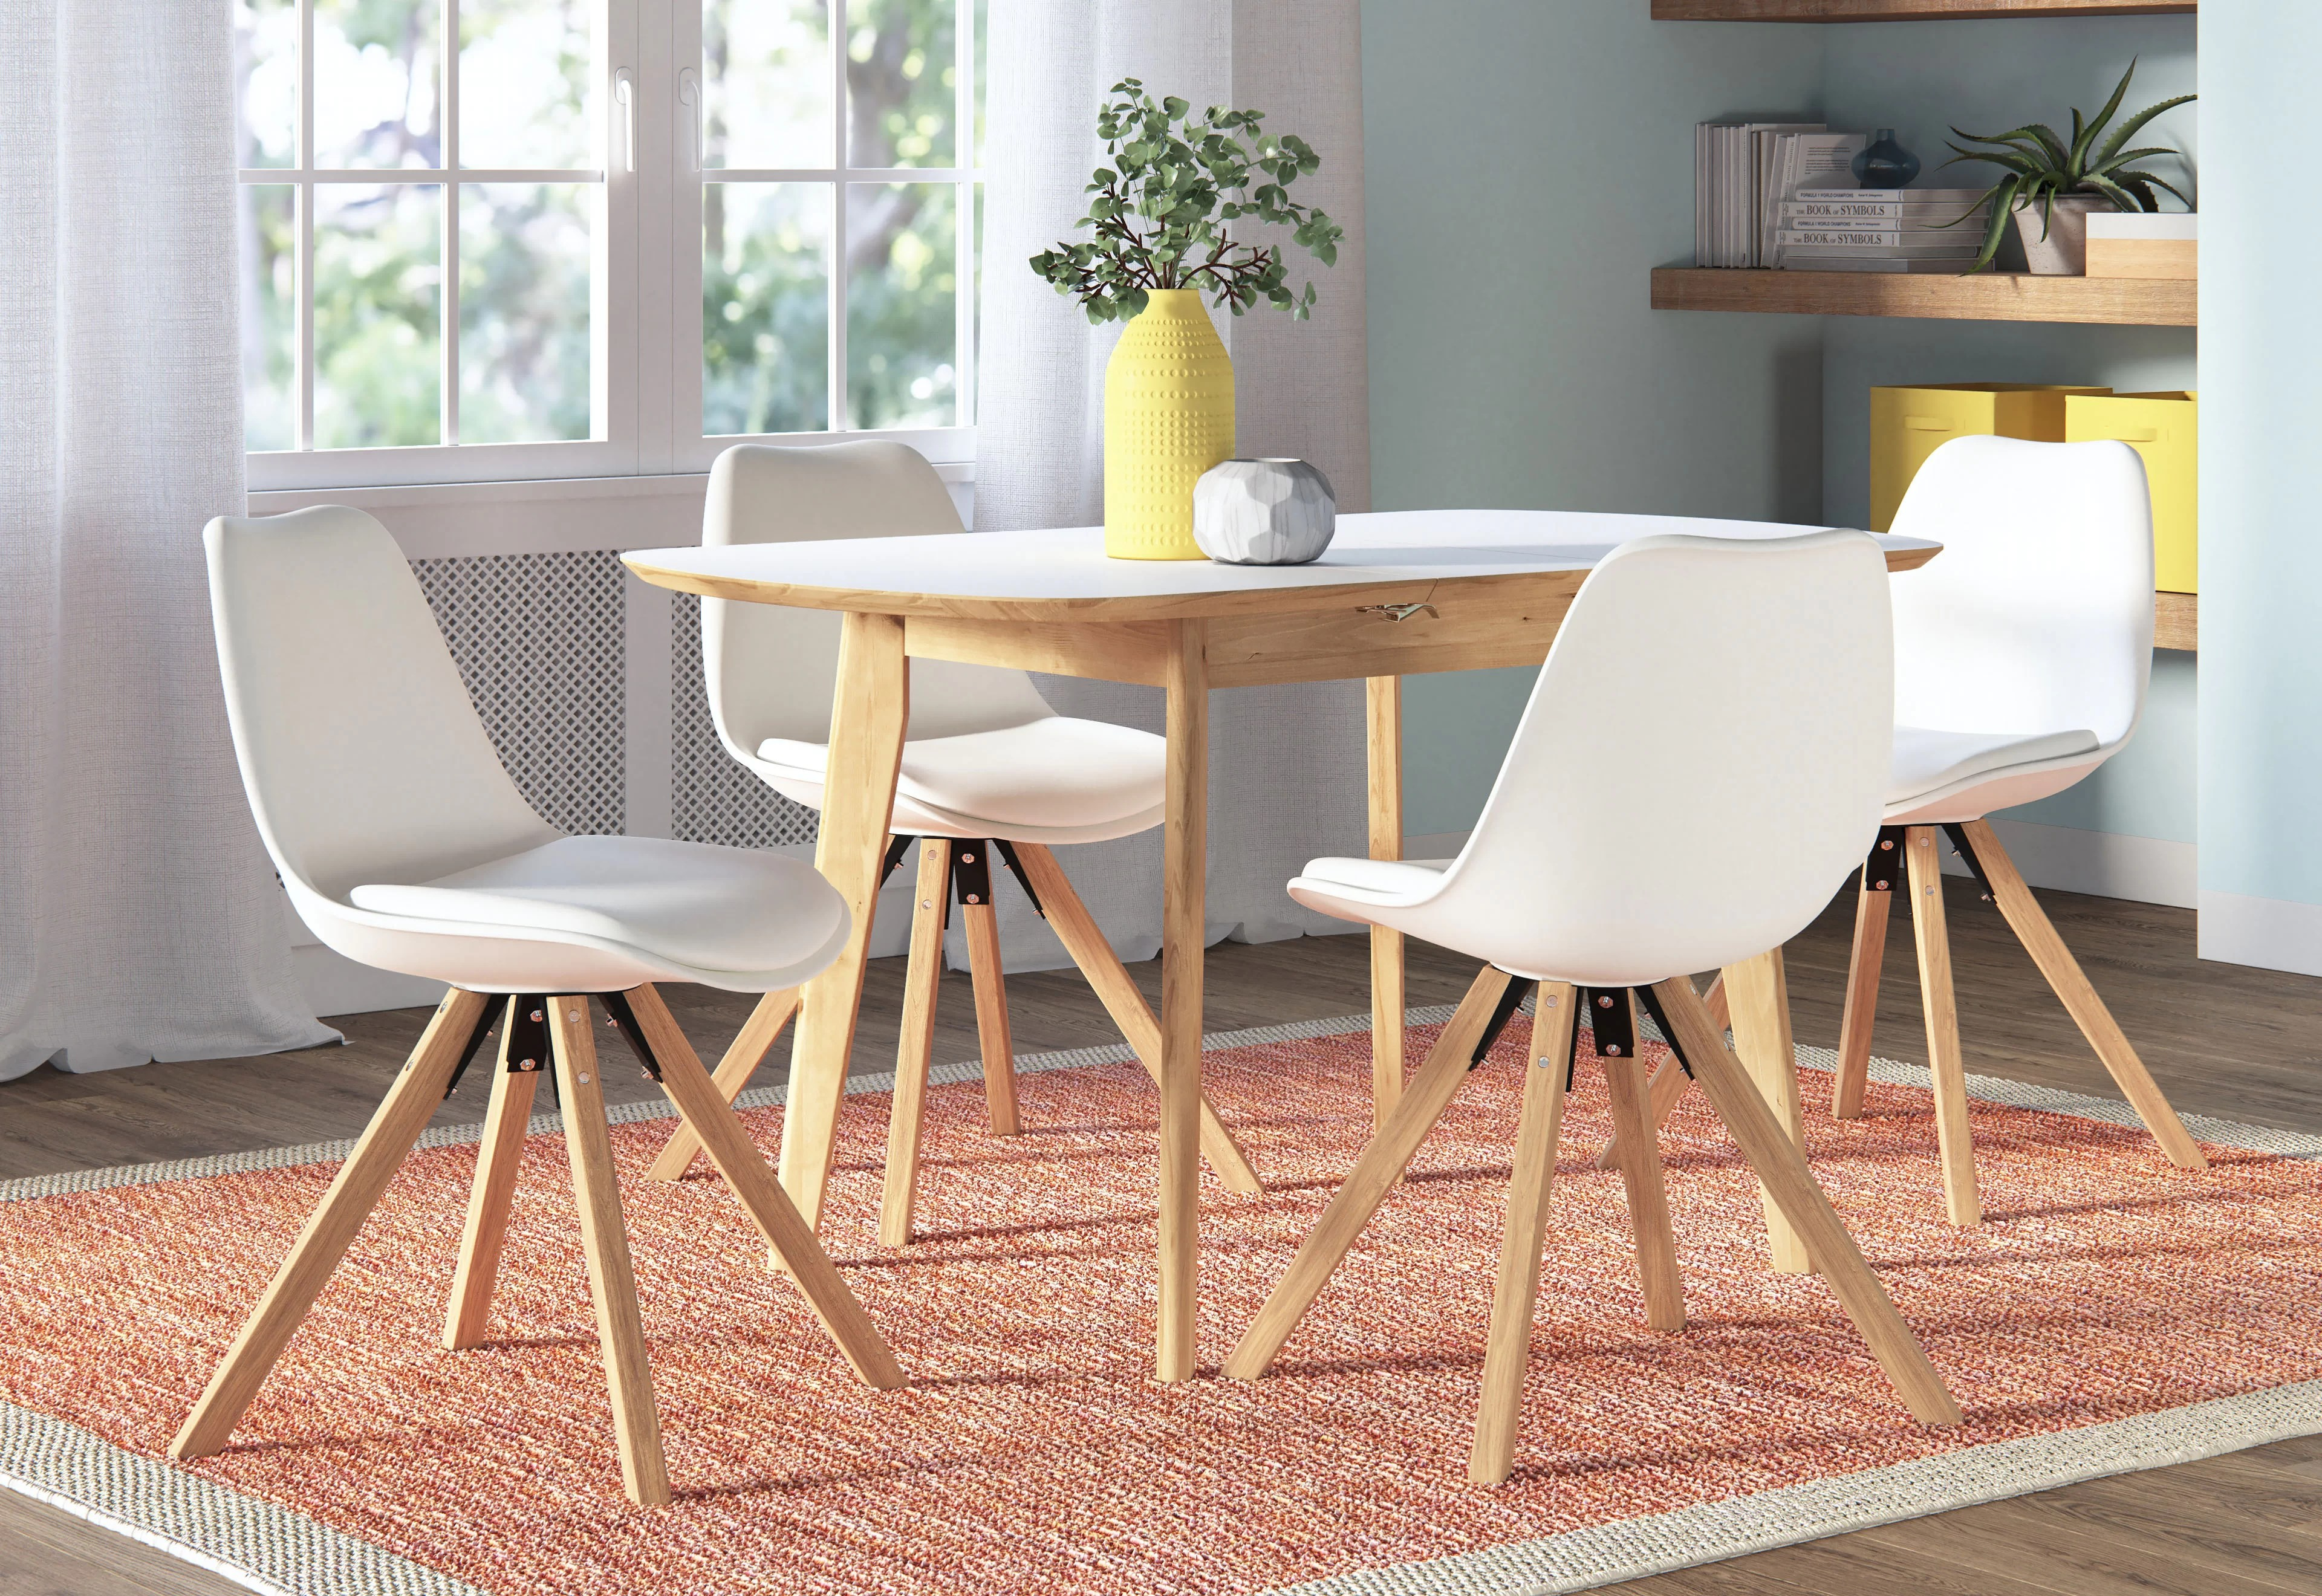 Dining Room Chairs Set Of 4 Fabron Extendable Dining Set With 4 Chairs